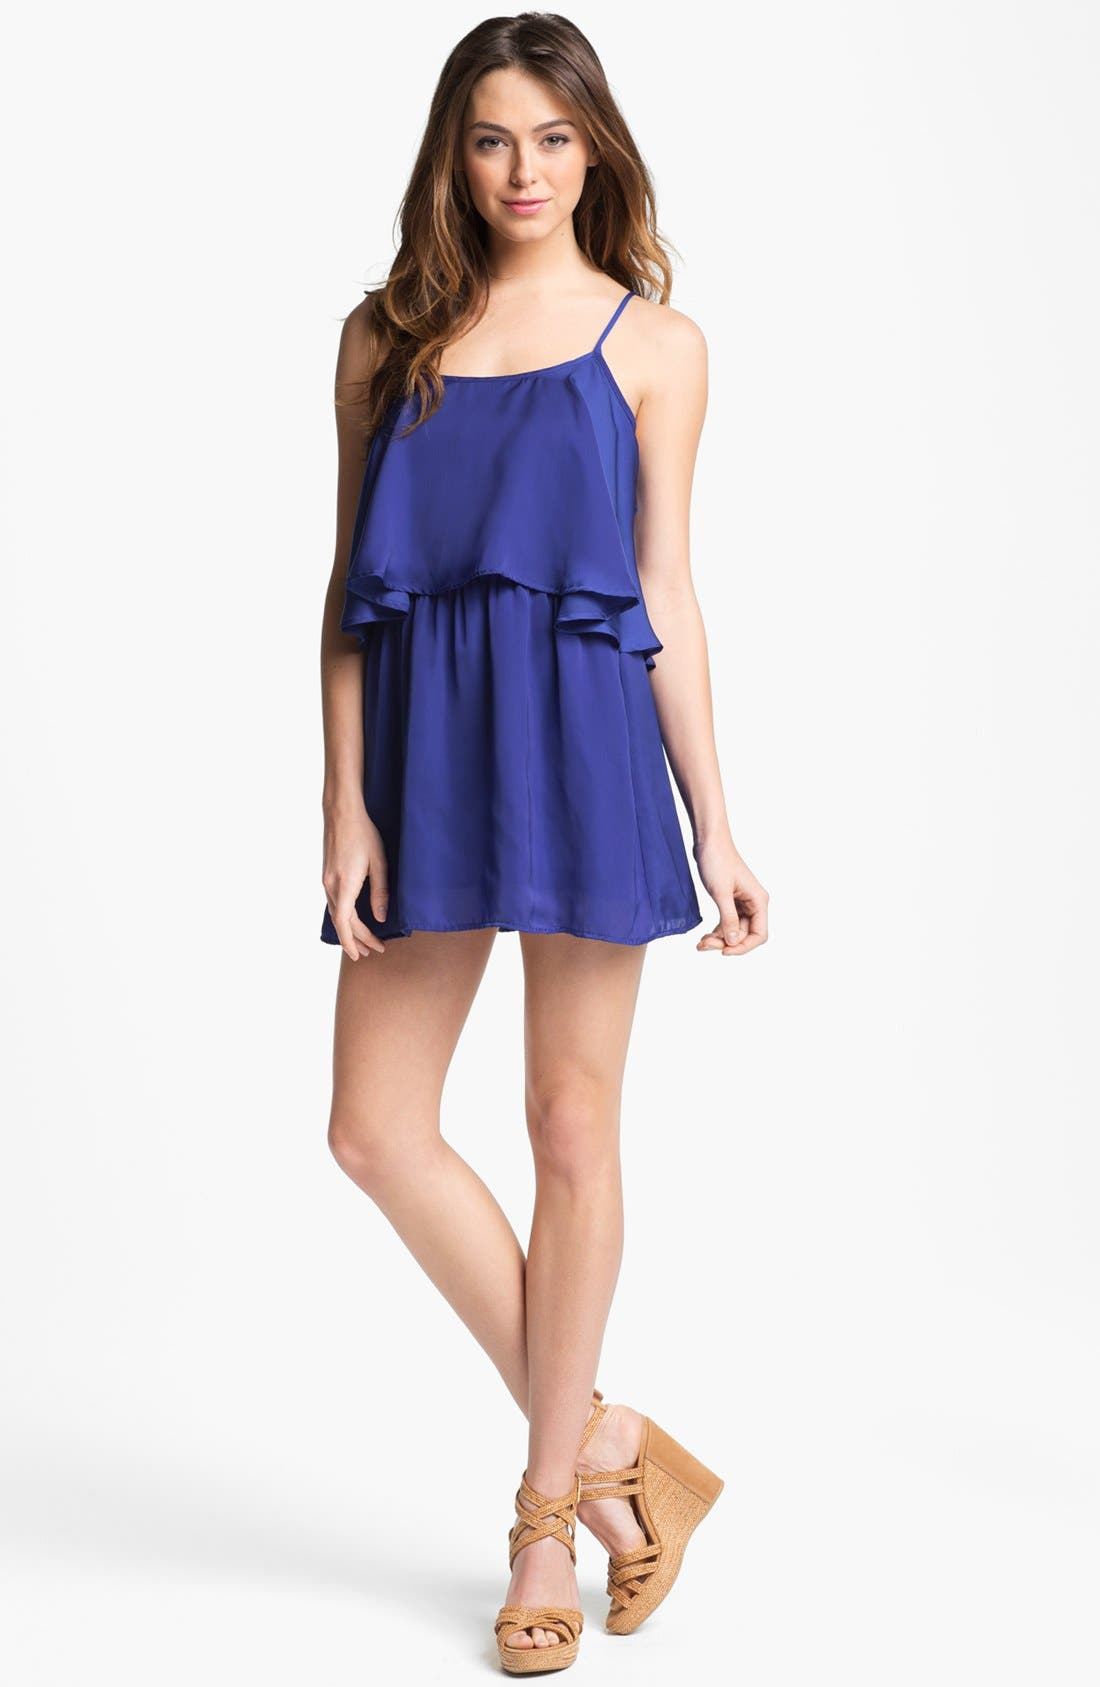 Alternate Image 1 Selected - Lovers + Friends 'Sunkissed' Tiered Layer Dress